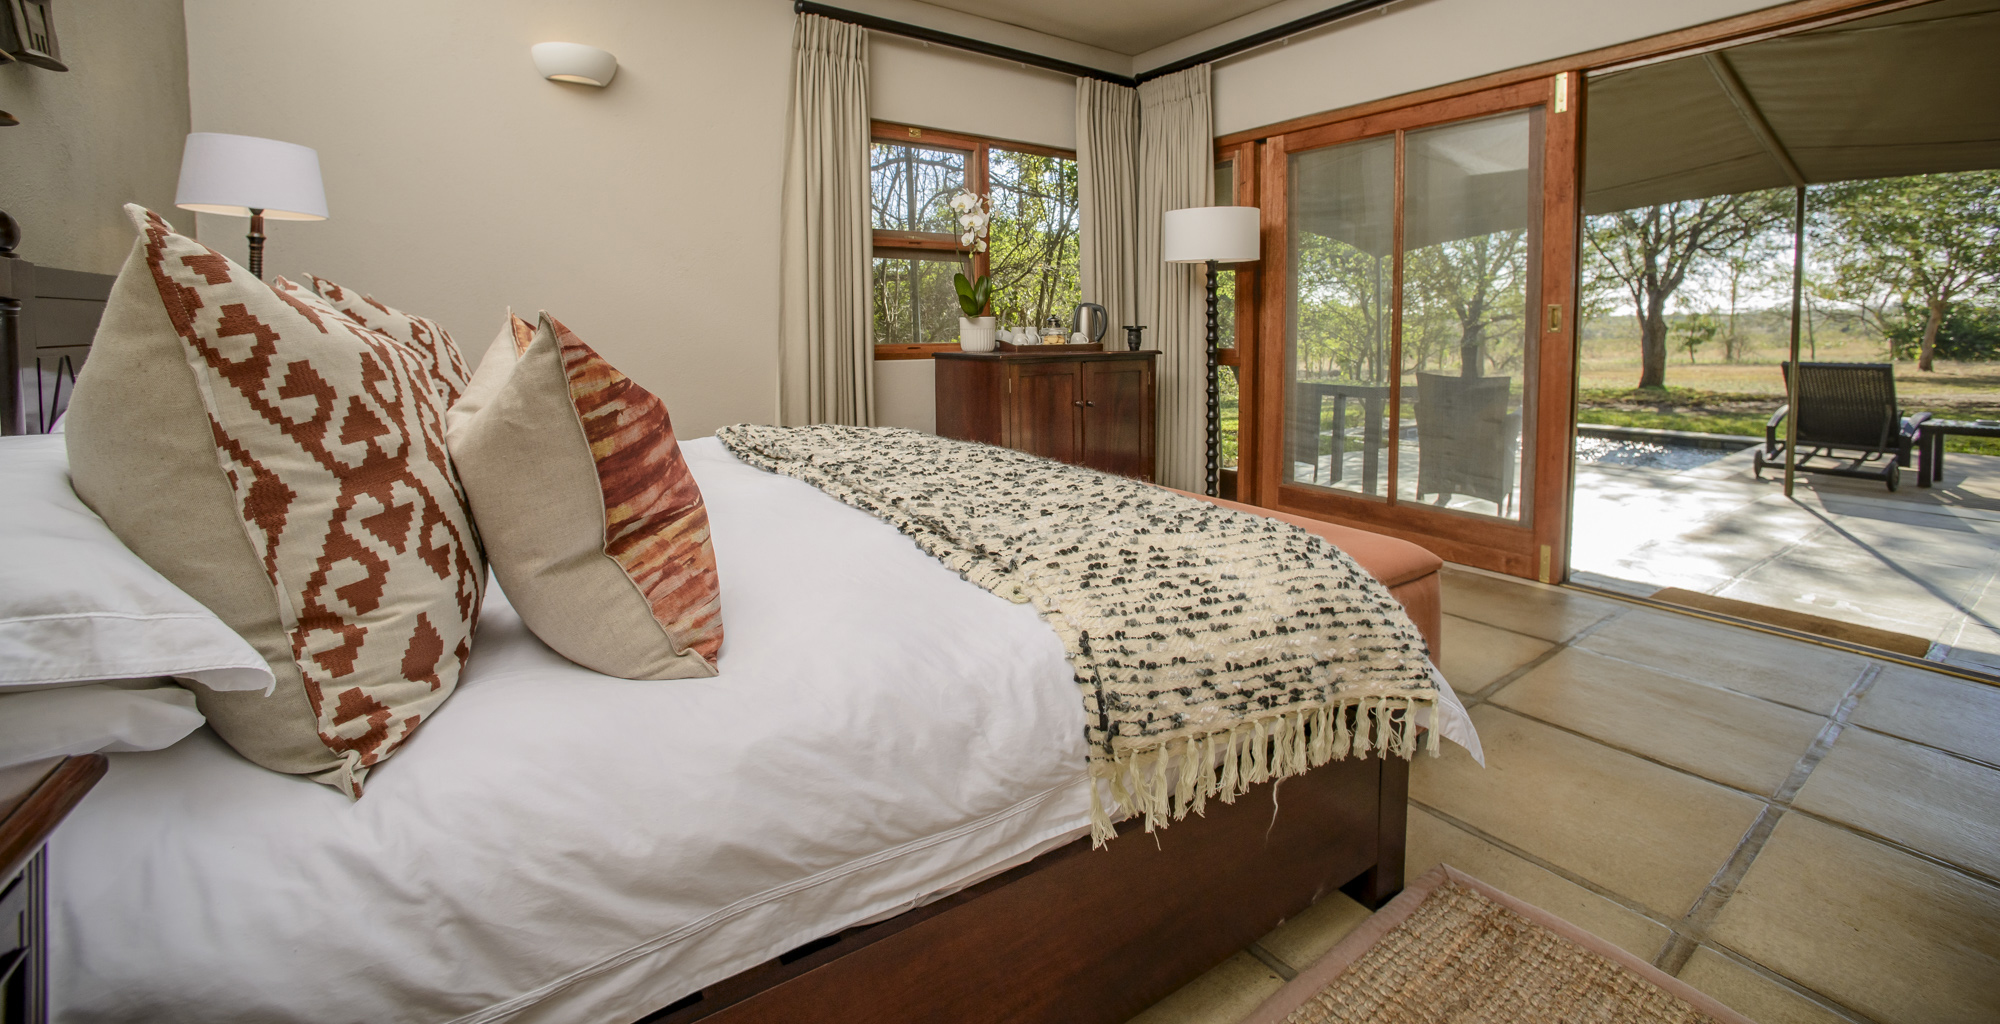 South-Africa-Savanna-Private-Bedroom-View